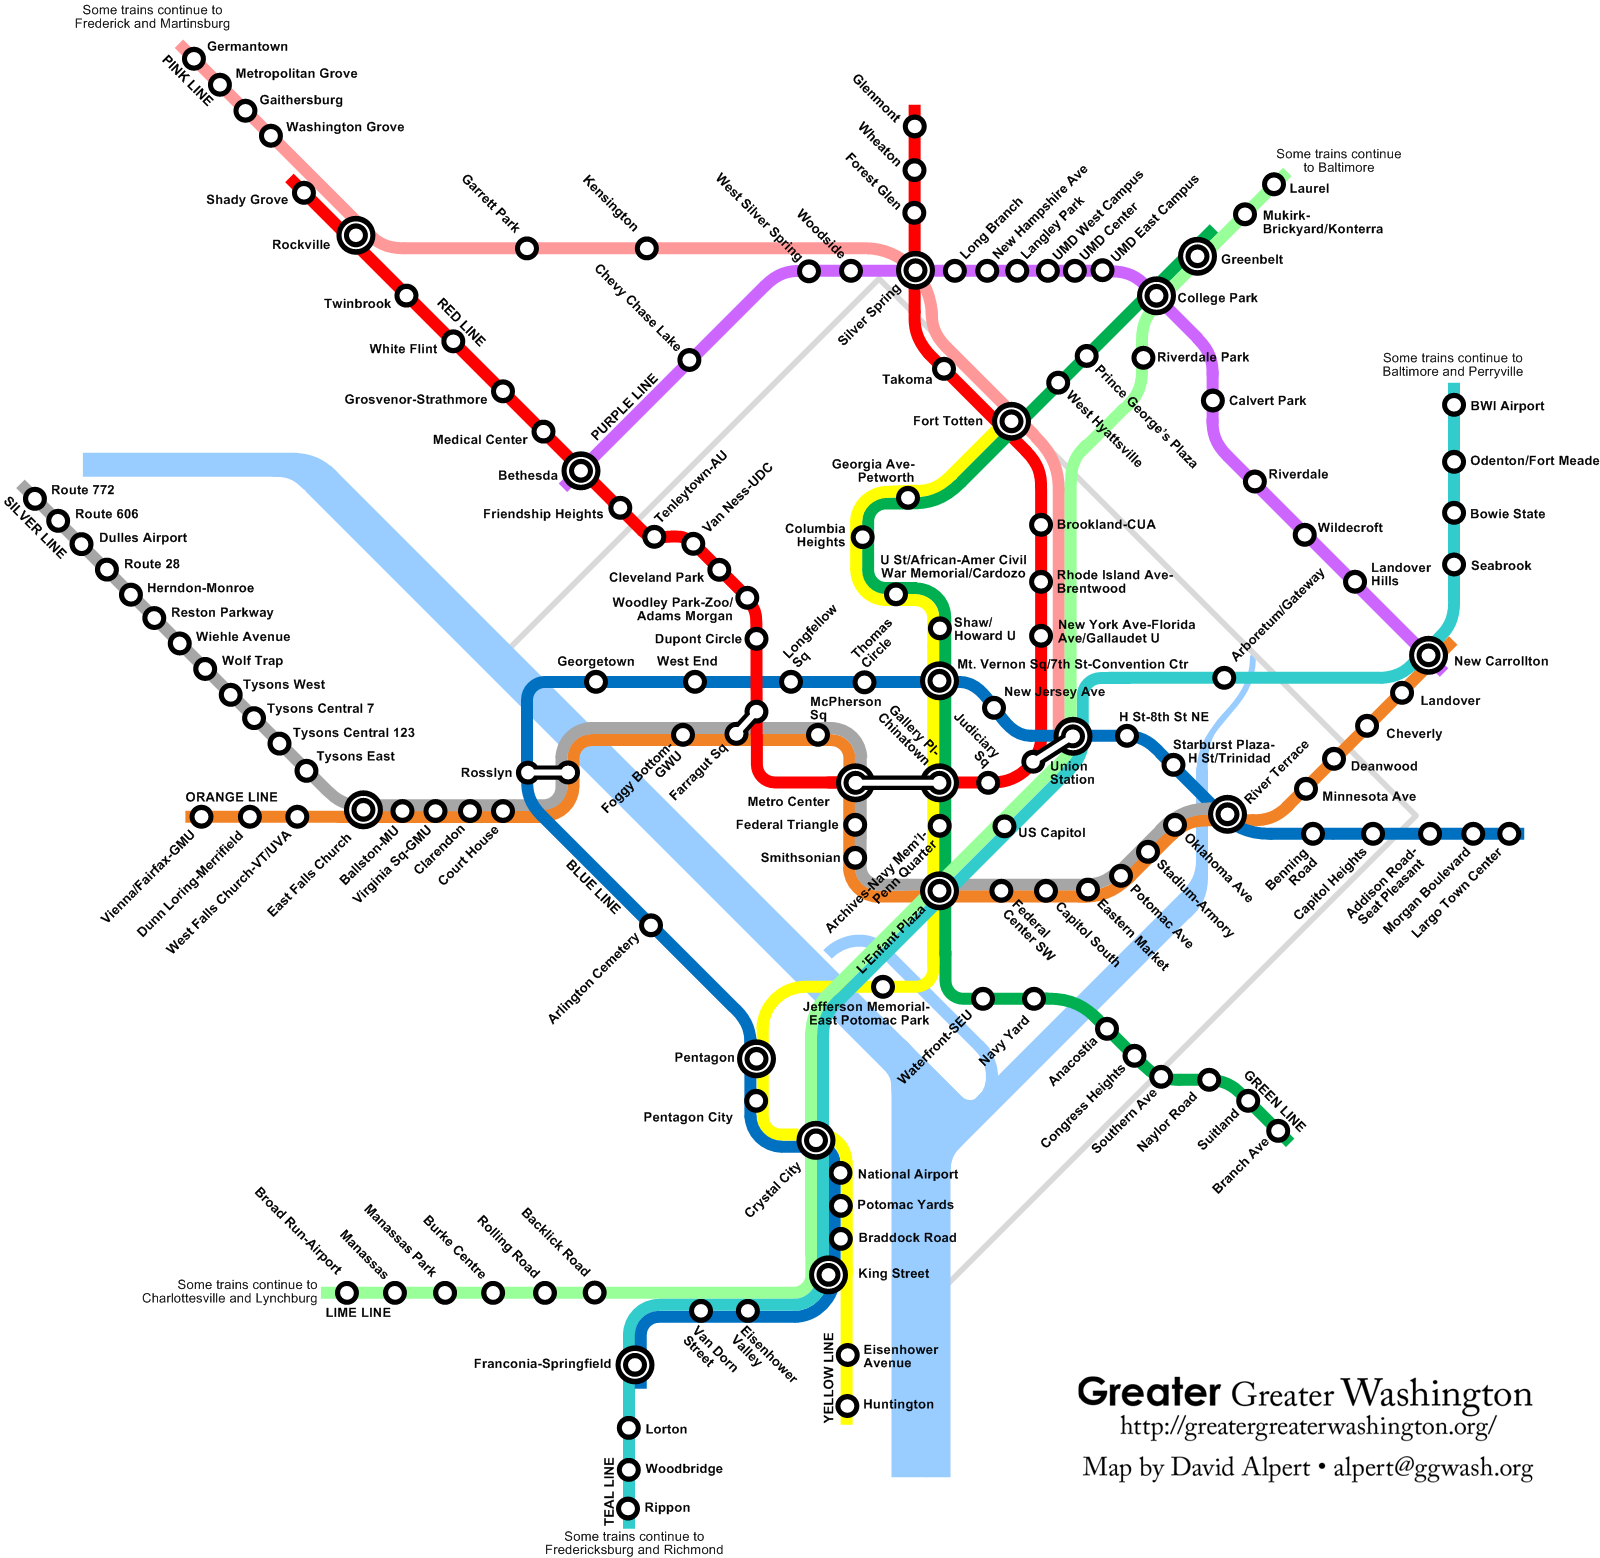 Washington DC WMATA Metro Express Concept Map Unofficial - Washington dc map airports